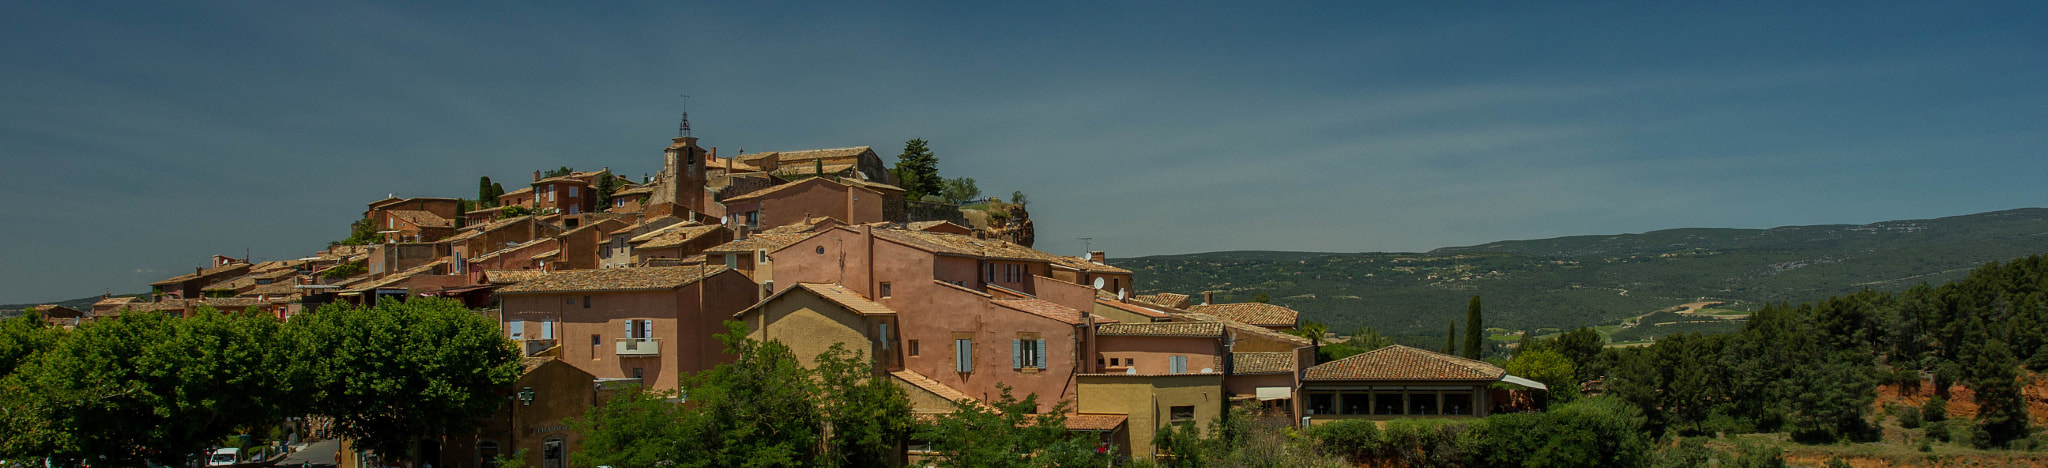 Photograph Roussillon by Christophe Fustinoni on 500px